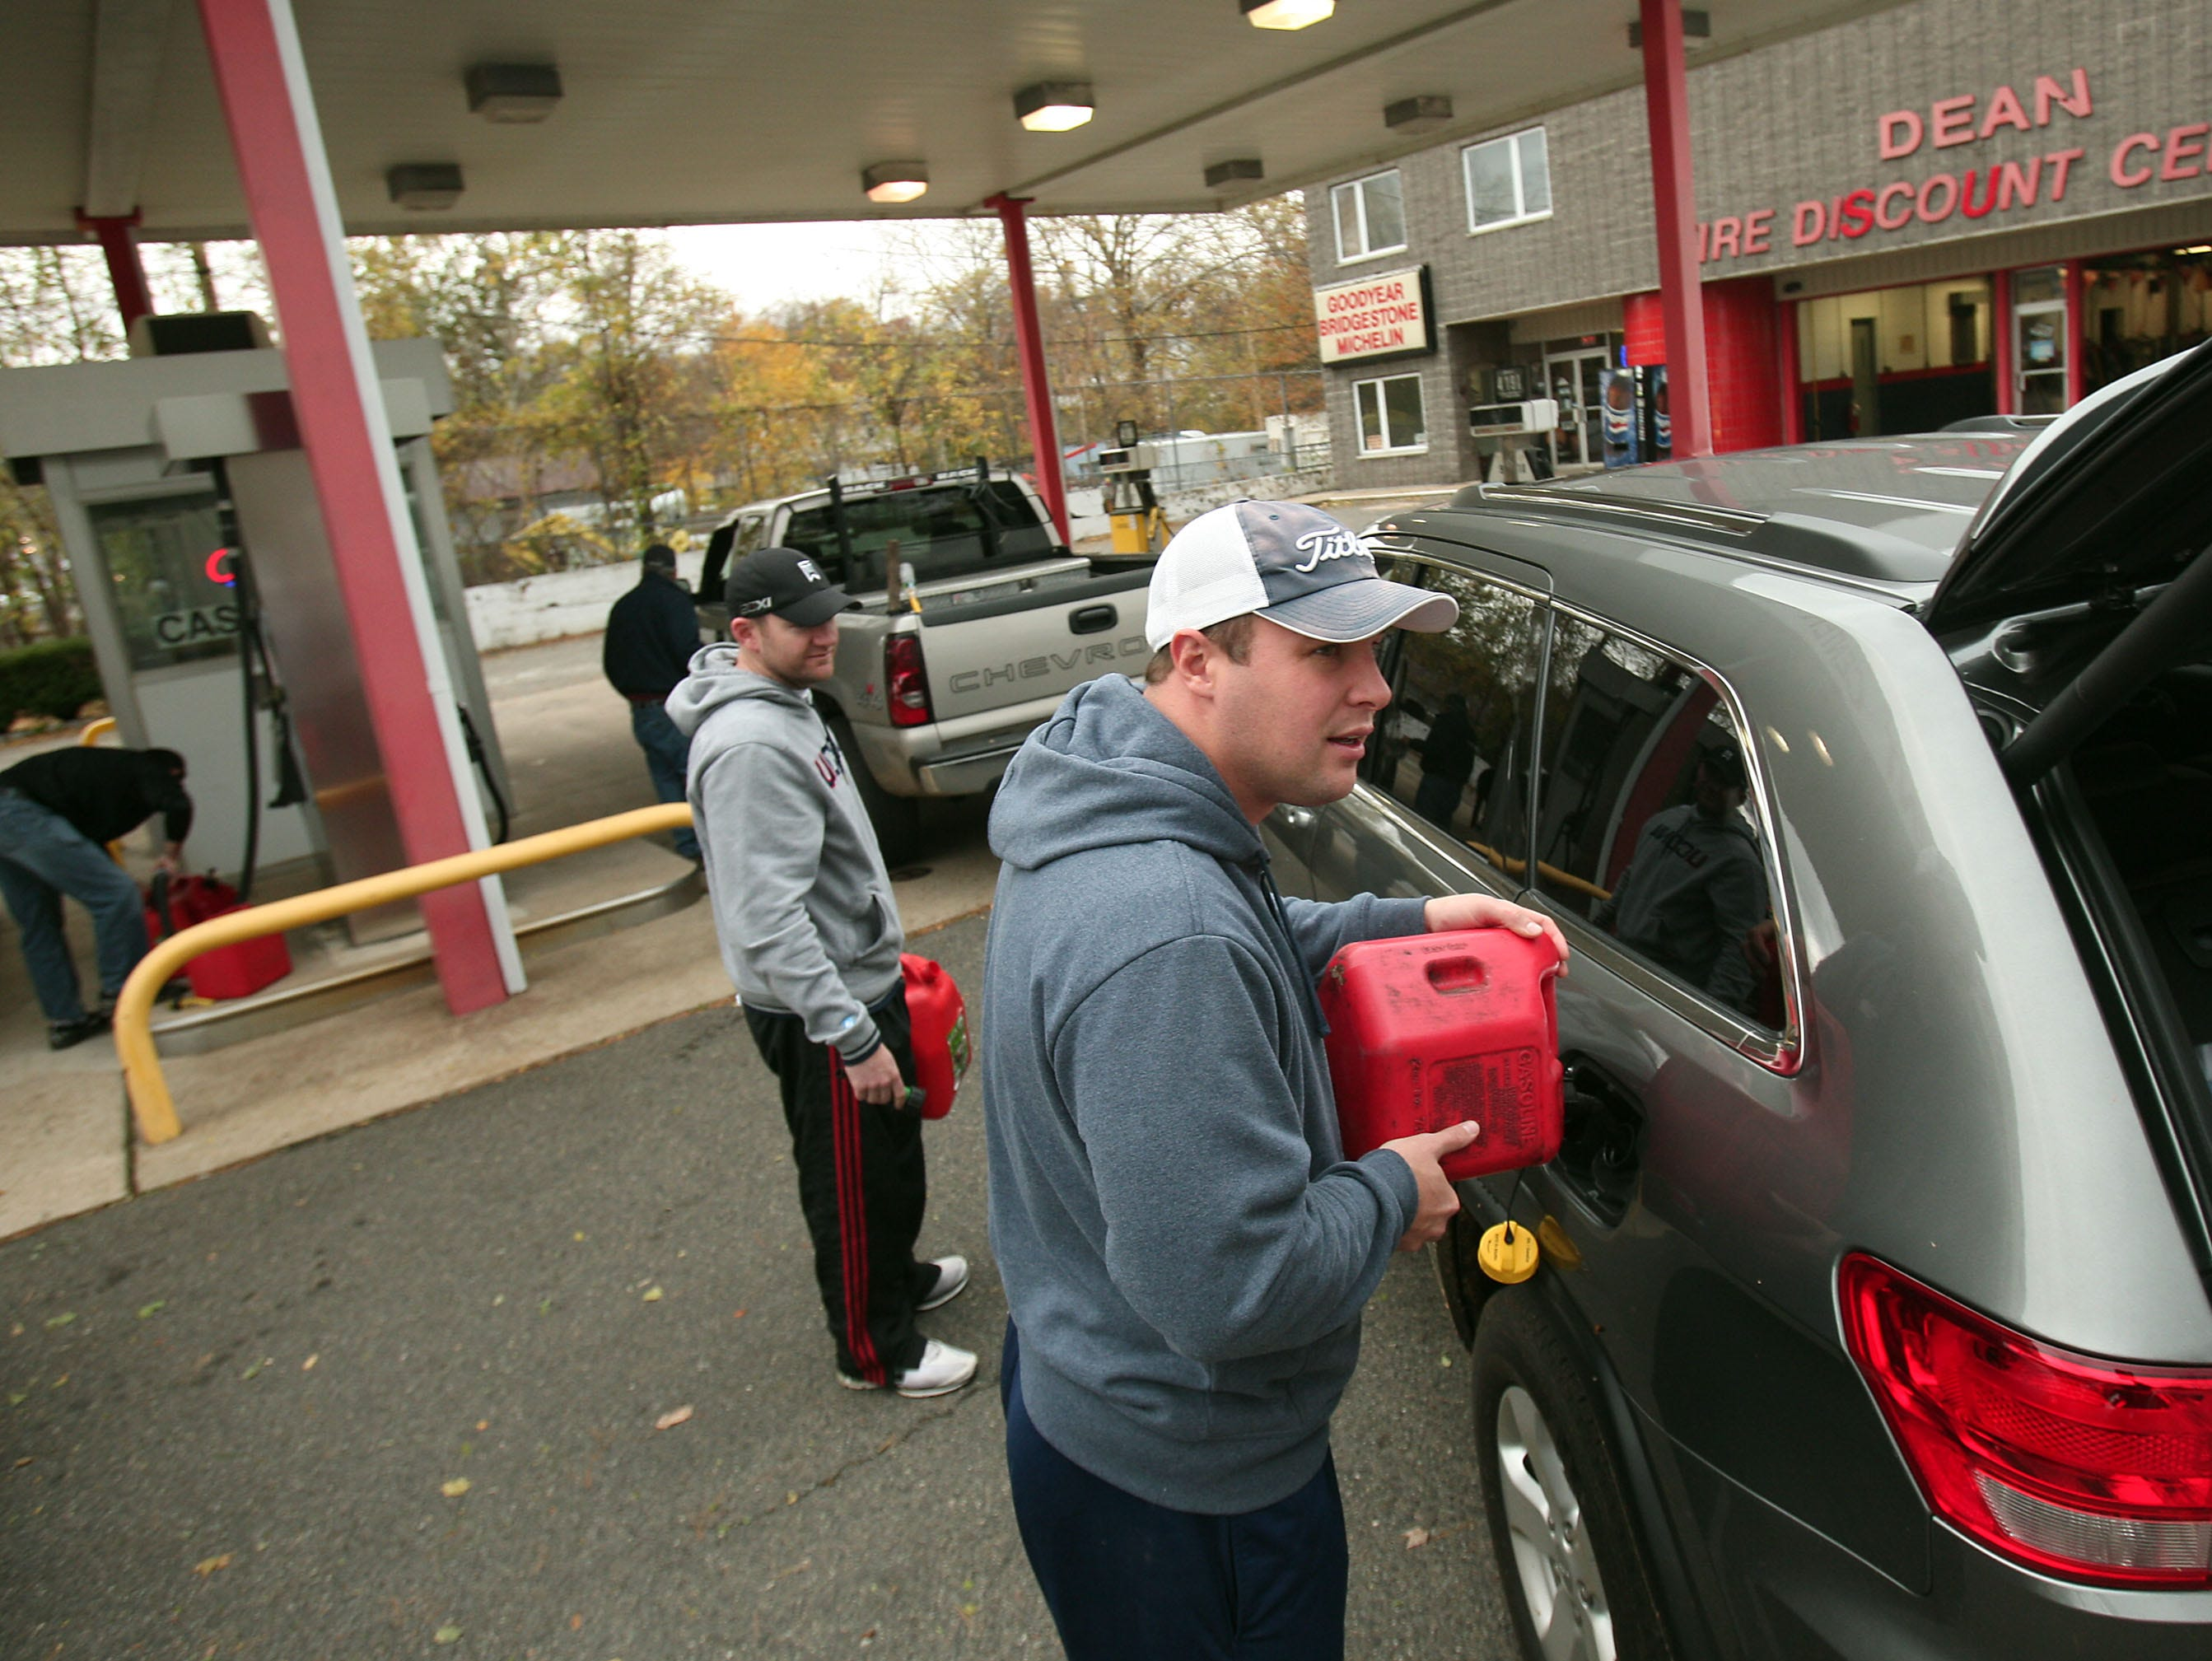 Morristown, NJ-- October 31, 2012--Tom Collins of Morristown, NJ puts gas in his SUV. Collins waited over 45 minutes to fill up his tank and gas cans at Dean Discount Center in Morristown in the aftermath of Hurricane Sandy. 